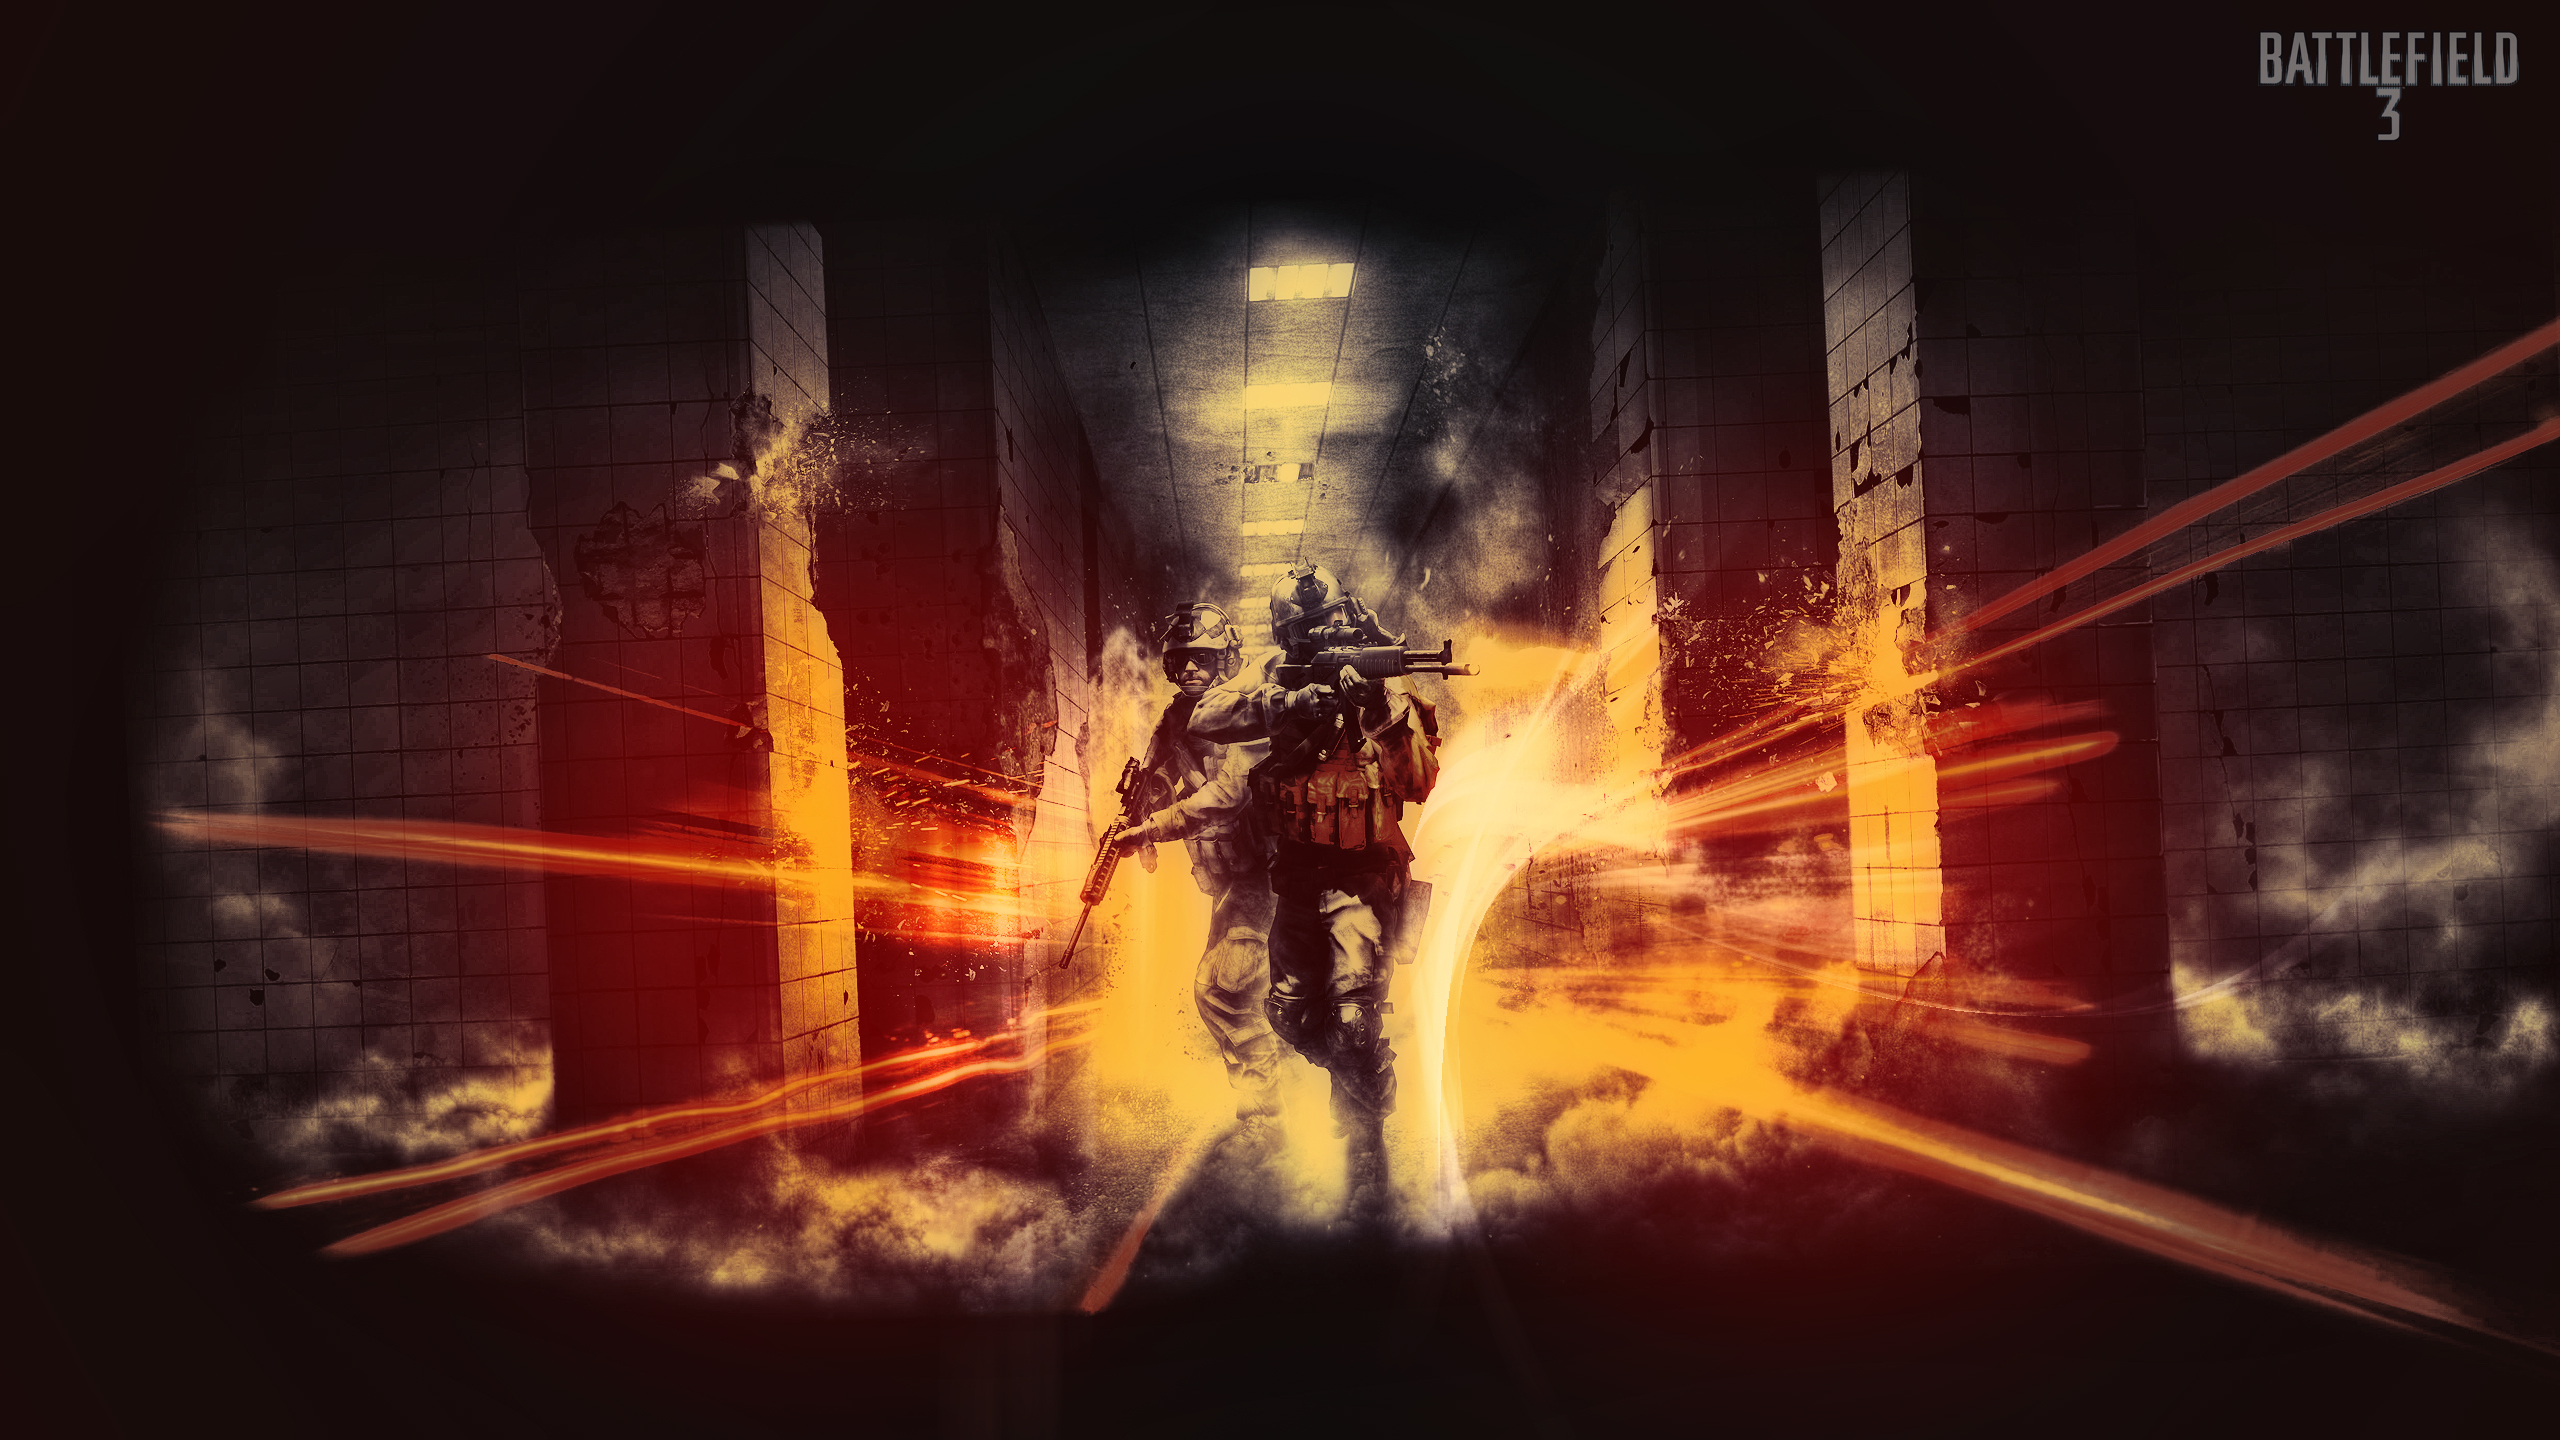 HD Battlefield 3 2560x1440 Wallpaper 2560x1440